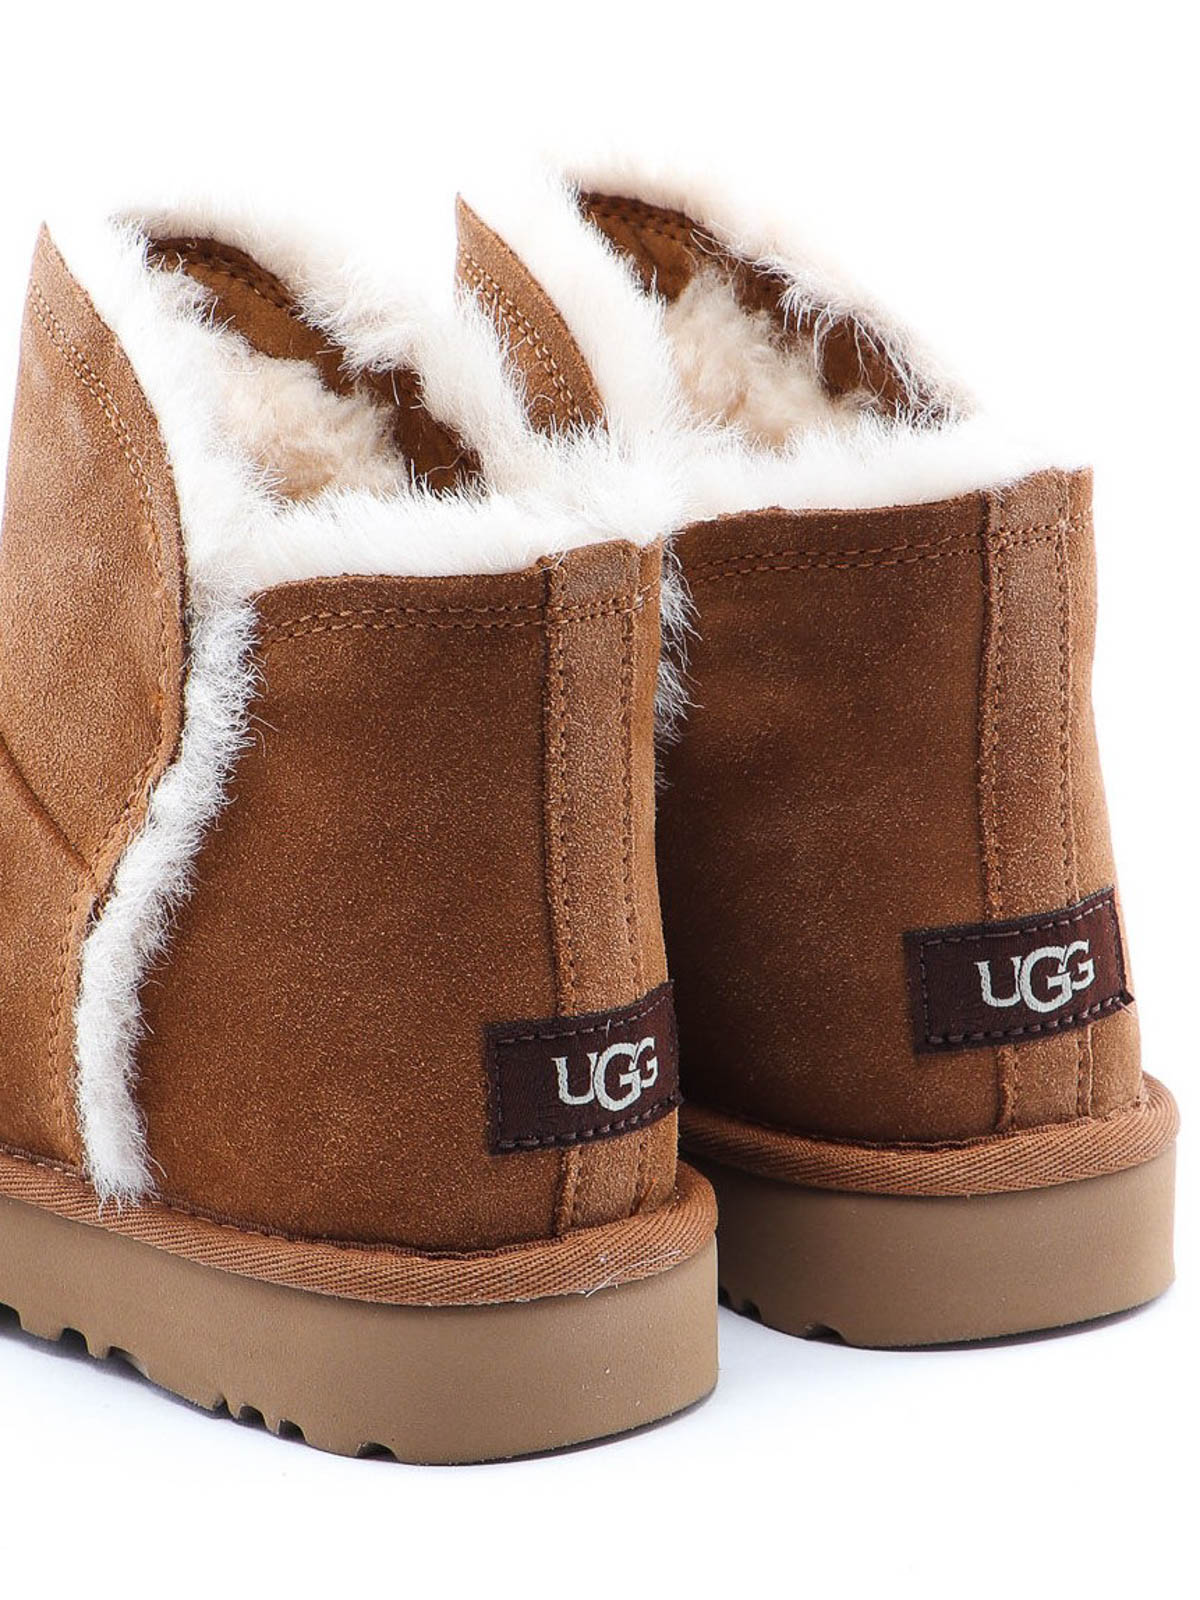 Ugg Ugg Classic Mini Fluff High Low Ankle Boot, Chestnut